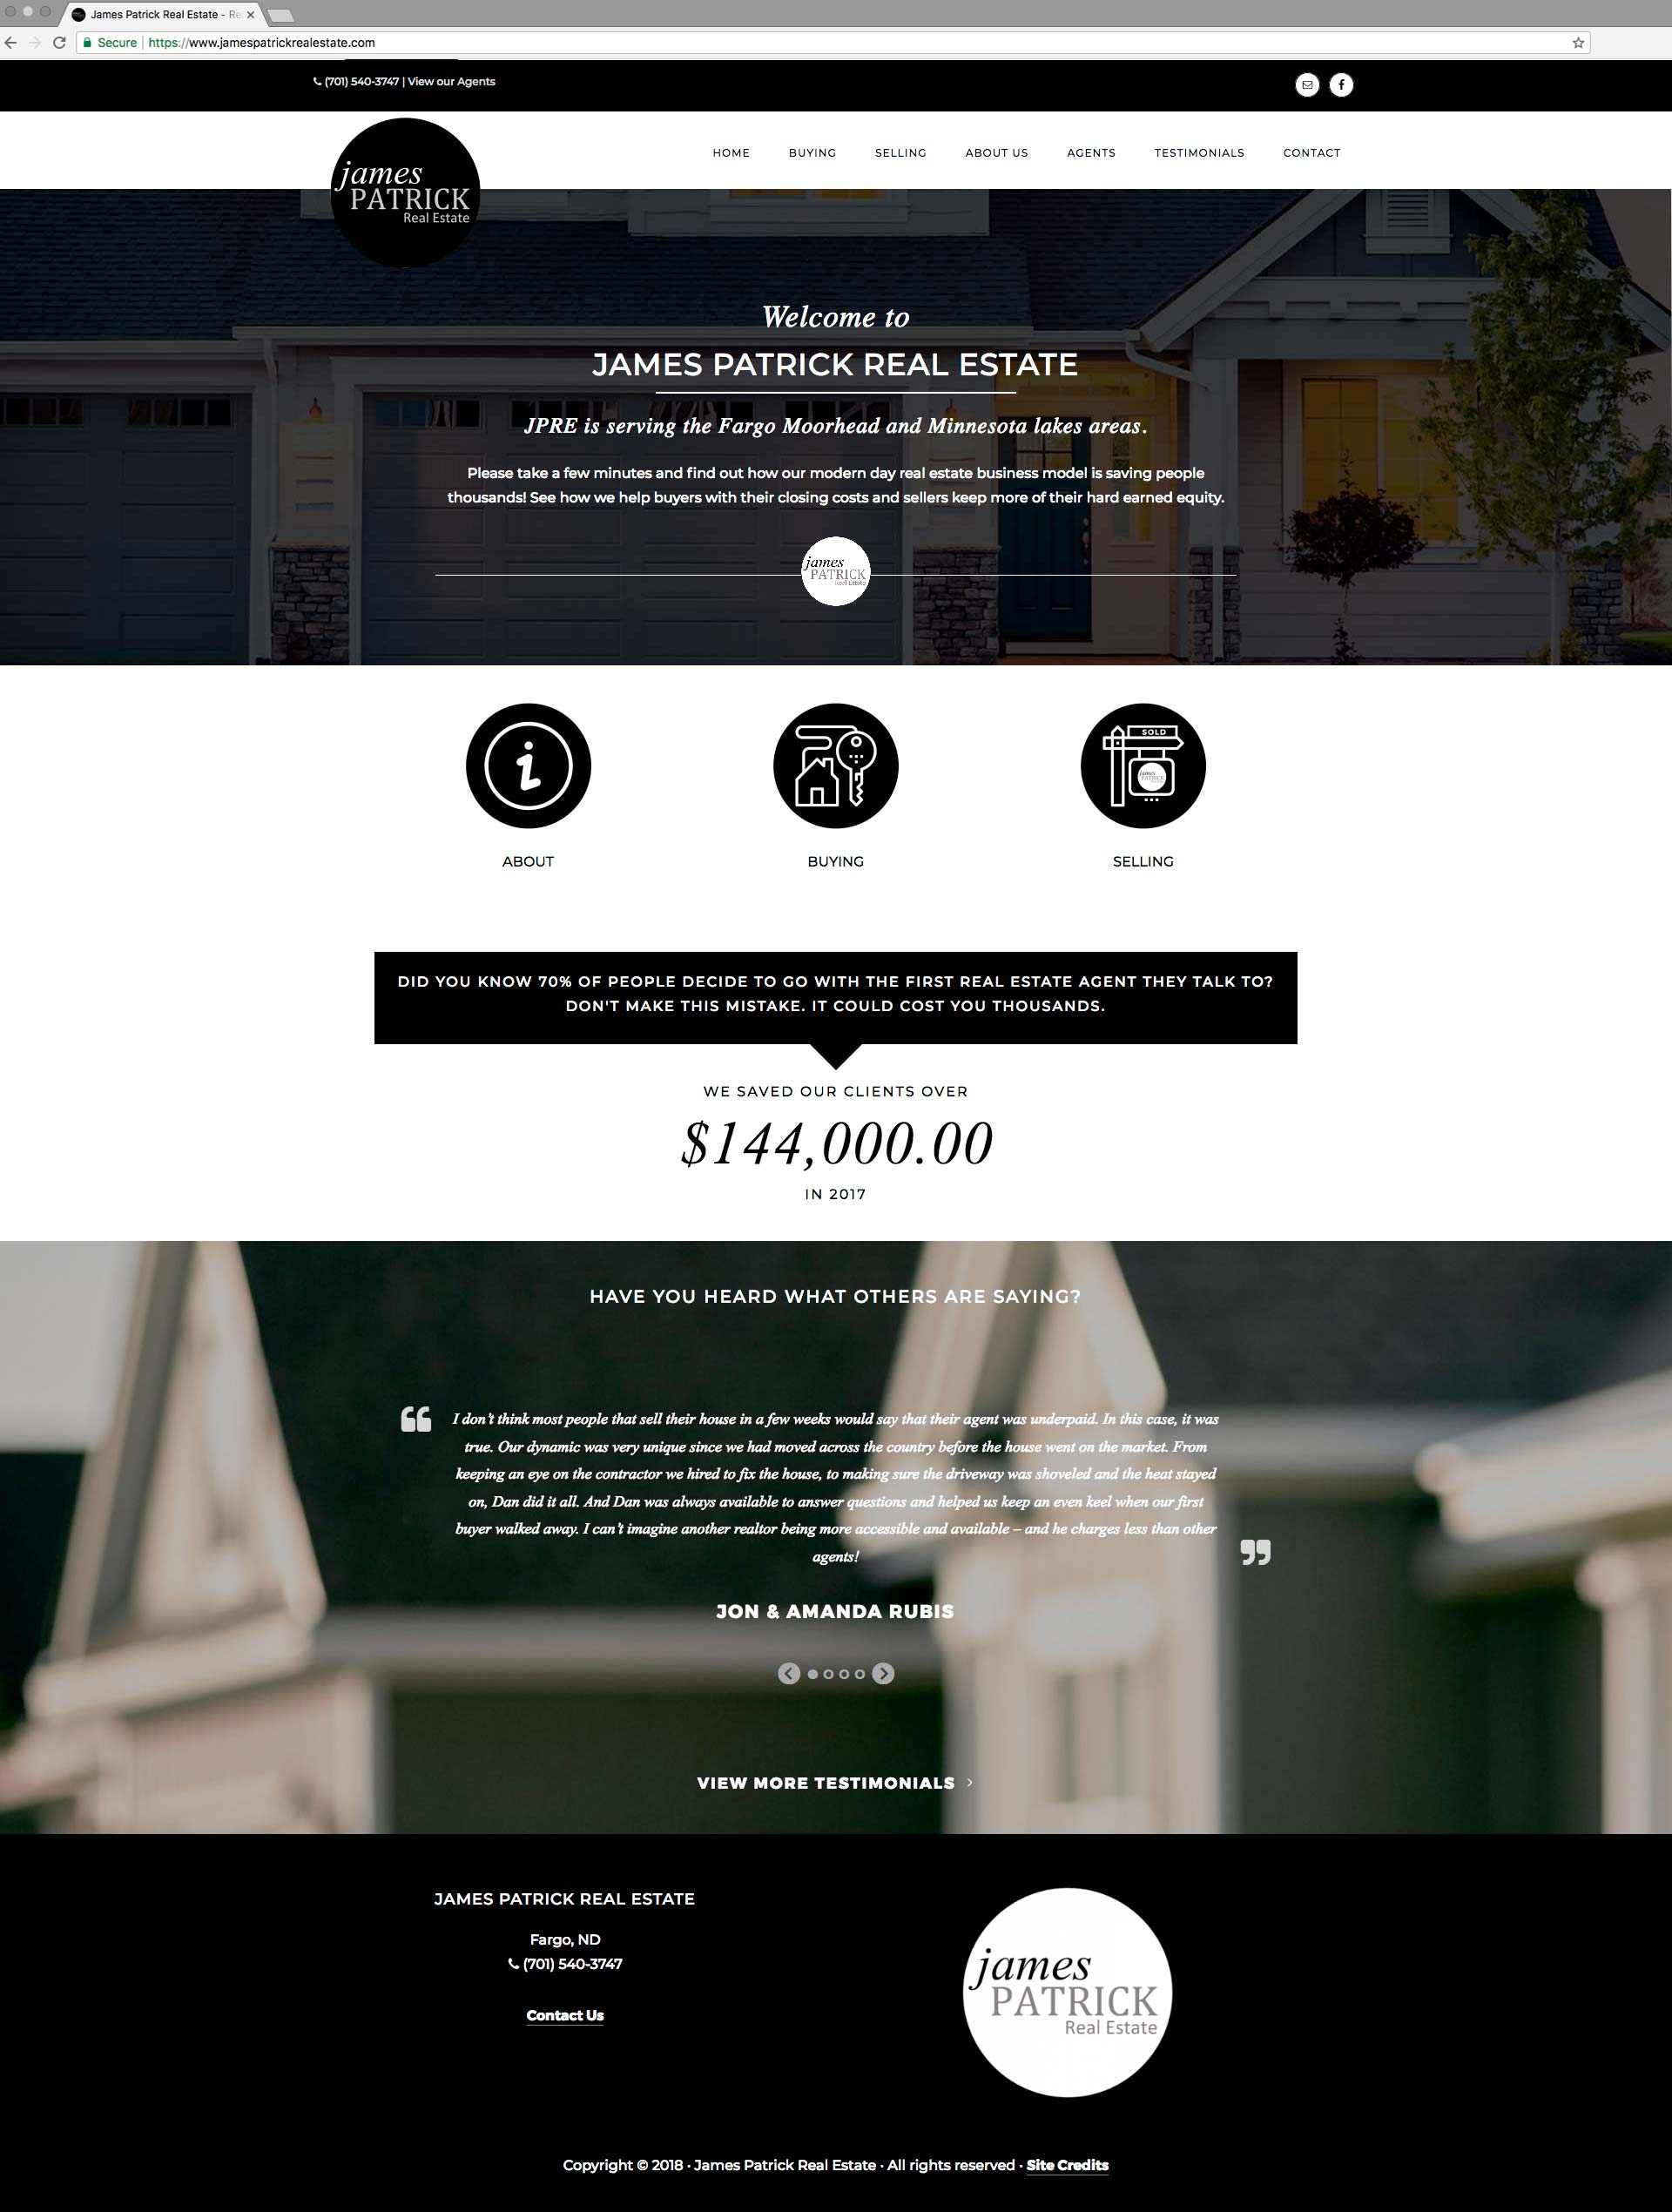 James Patrick Real Estate Home Page